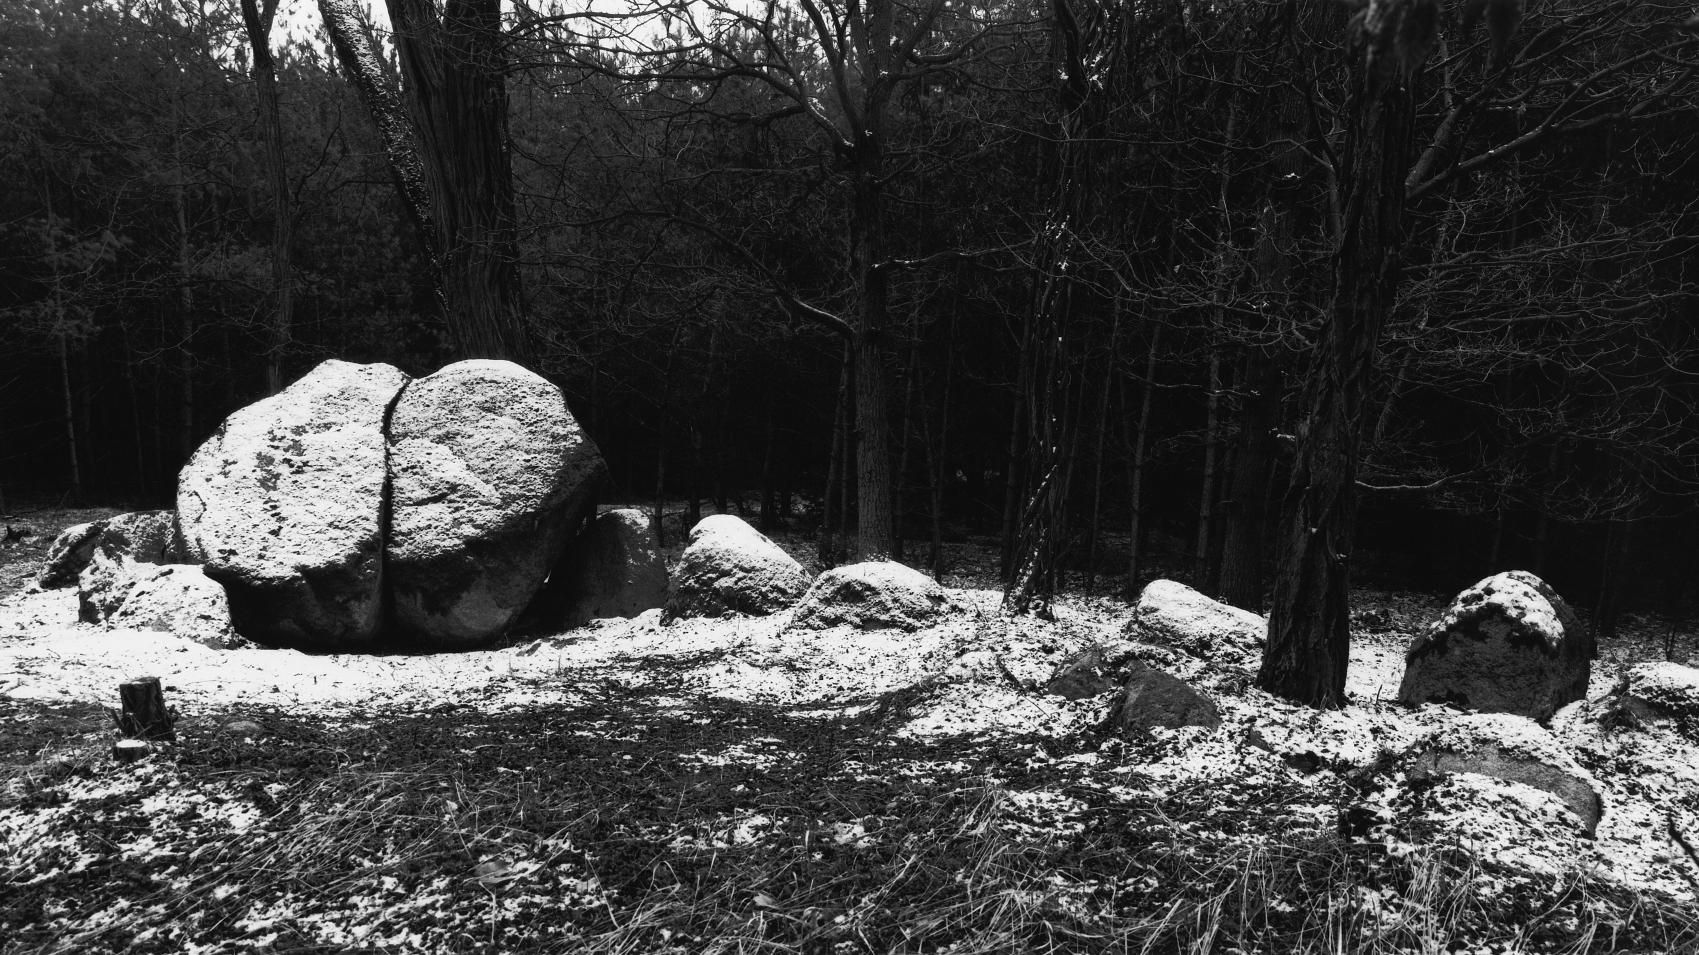 The large dolmen from Hohenwulsch-Friedrichsfleiss, site 1, in the district of Stendal. © State Office for Heritage Management and Archaeology Saxony-Anhalt, Juraj Lipták.